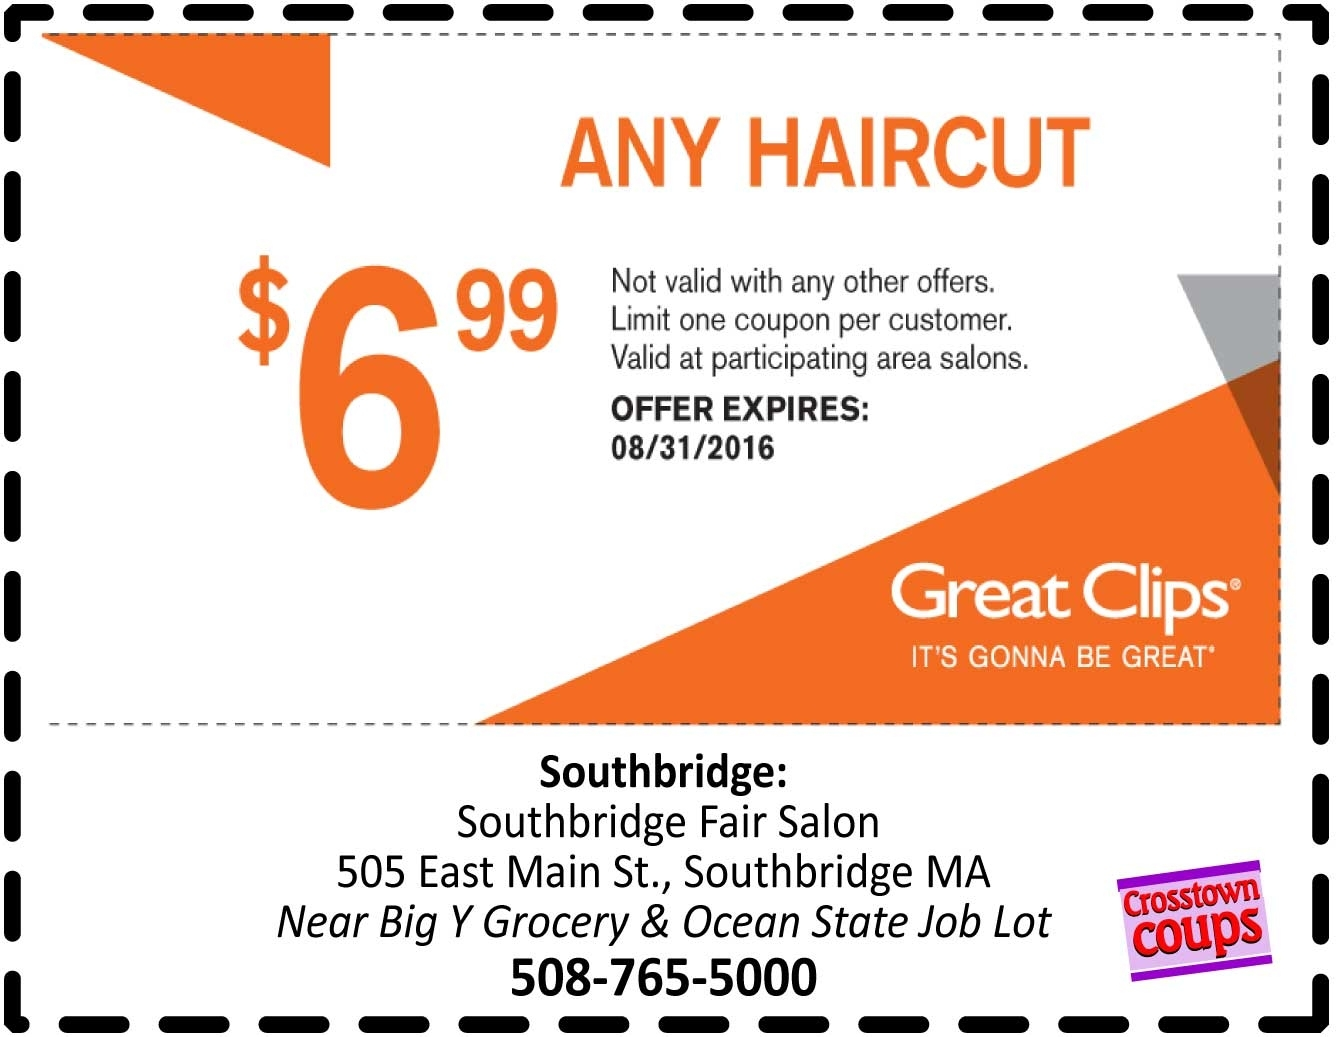 image relating to Sports Clips Free Haircut Printable Coupon identify Haircut Coupon codes 2018 Around Me - Wavy Haircut